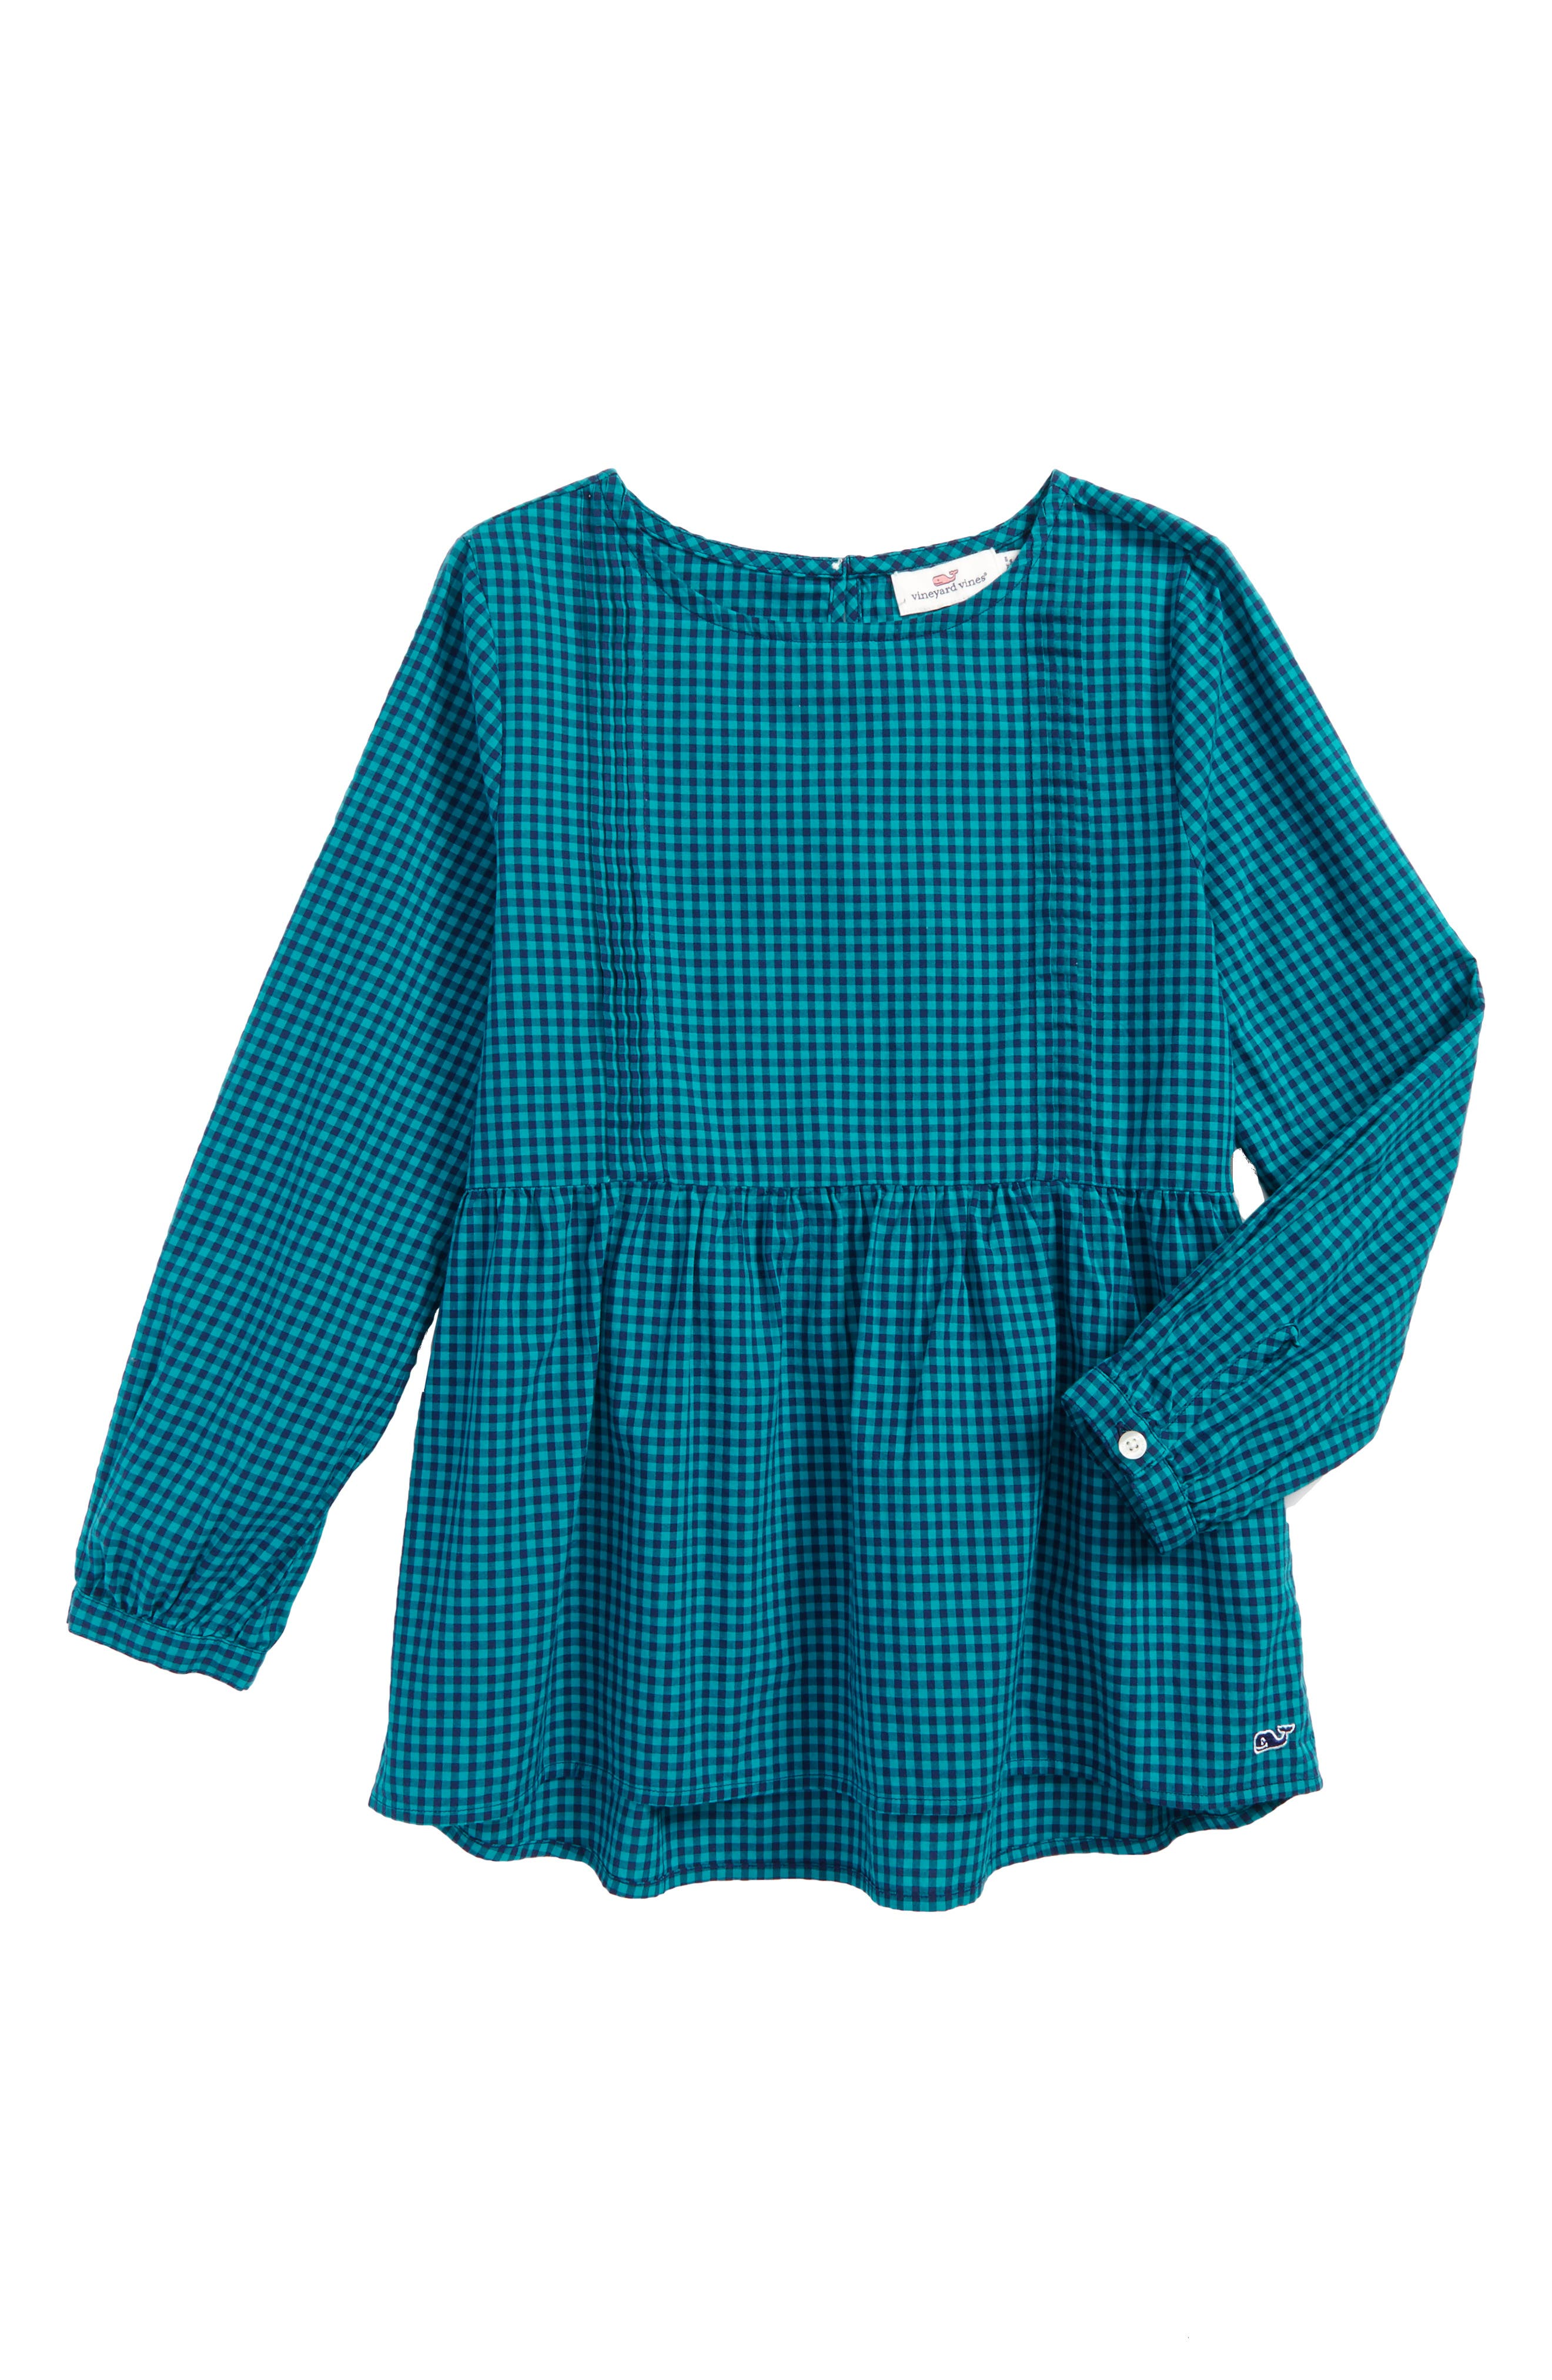 Gingham Woven Top,                         Main,                         color, 449